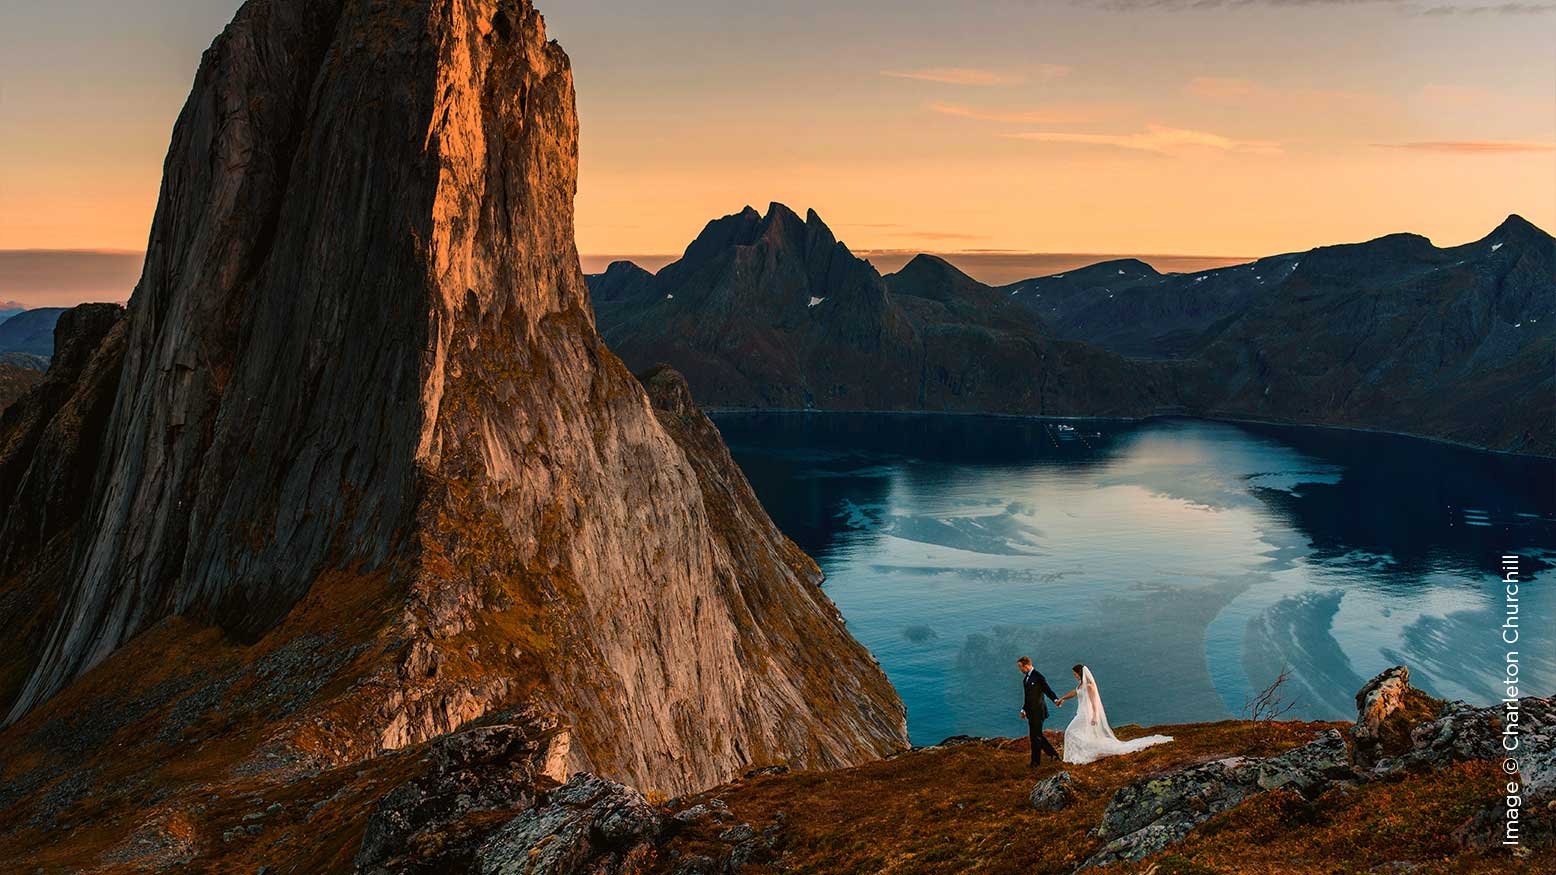 Top 10 Destination Wedding Photography Tips